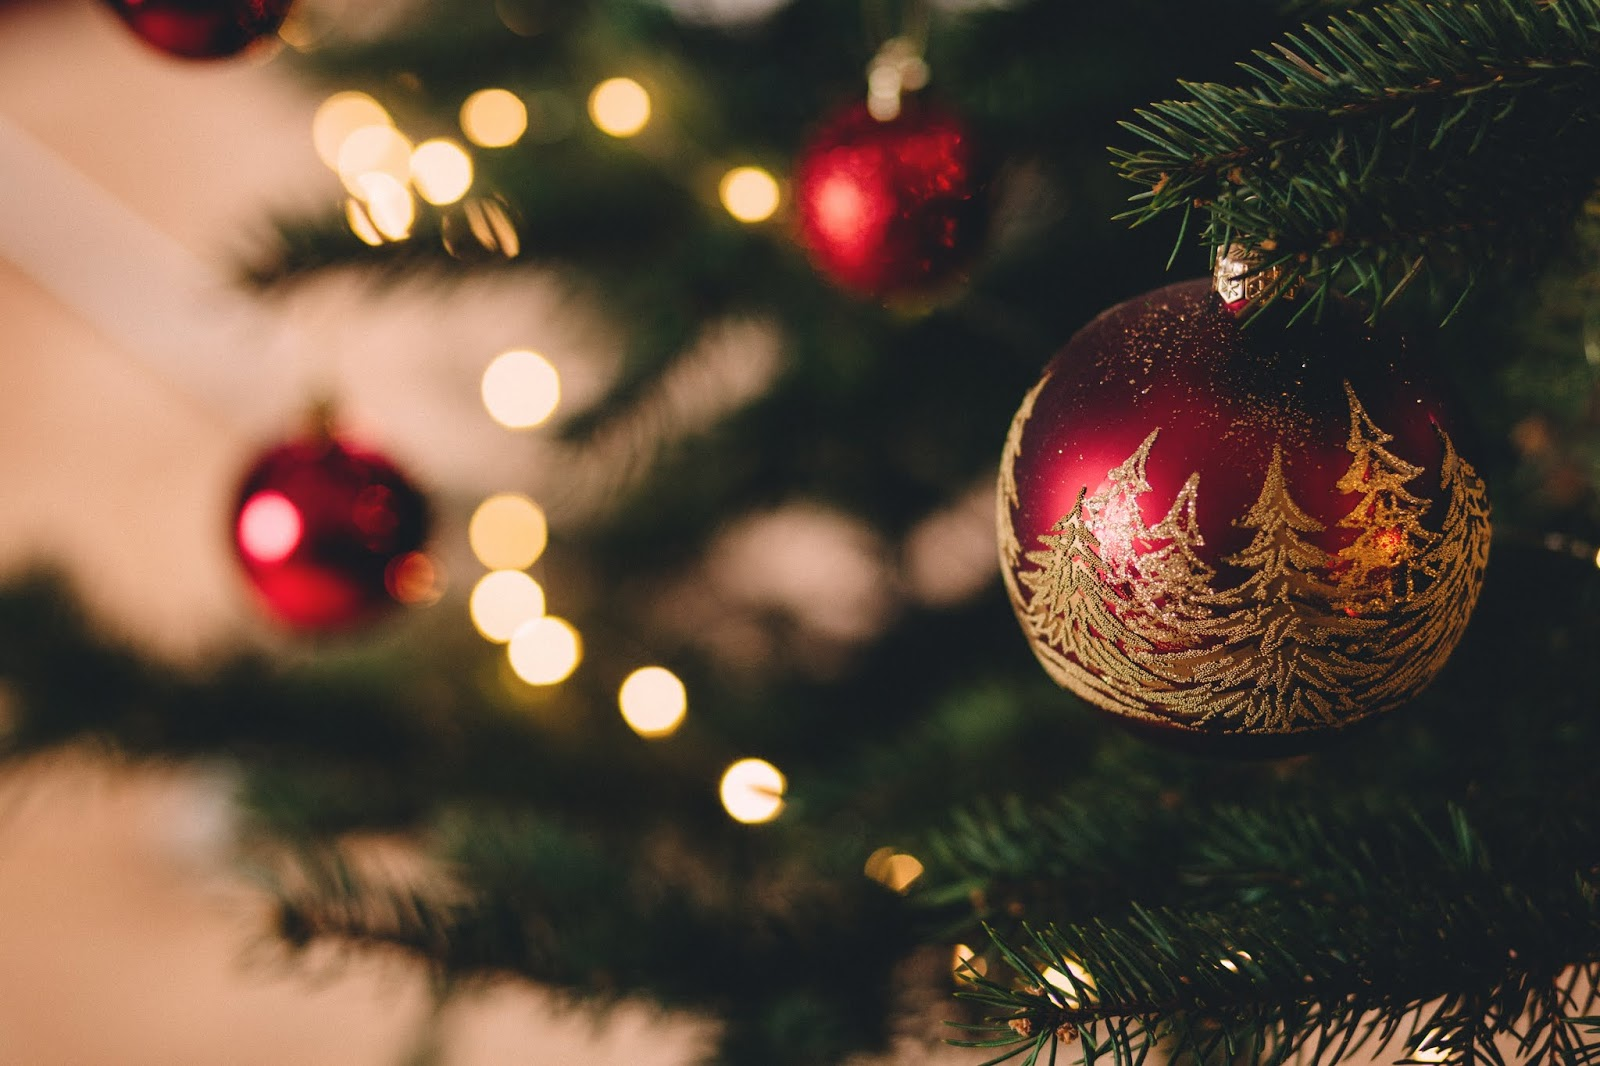 A close up photo of part of a Christmas tree, decorated in white lights and red baubles. The focus is on the branches and a bauble on the right, closest to the camera, with a number of fir trees painted on the baulble in gold glitter. The branches, baubles and lights in the distance, on the left, are out of focus.